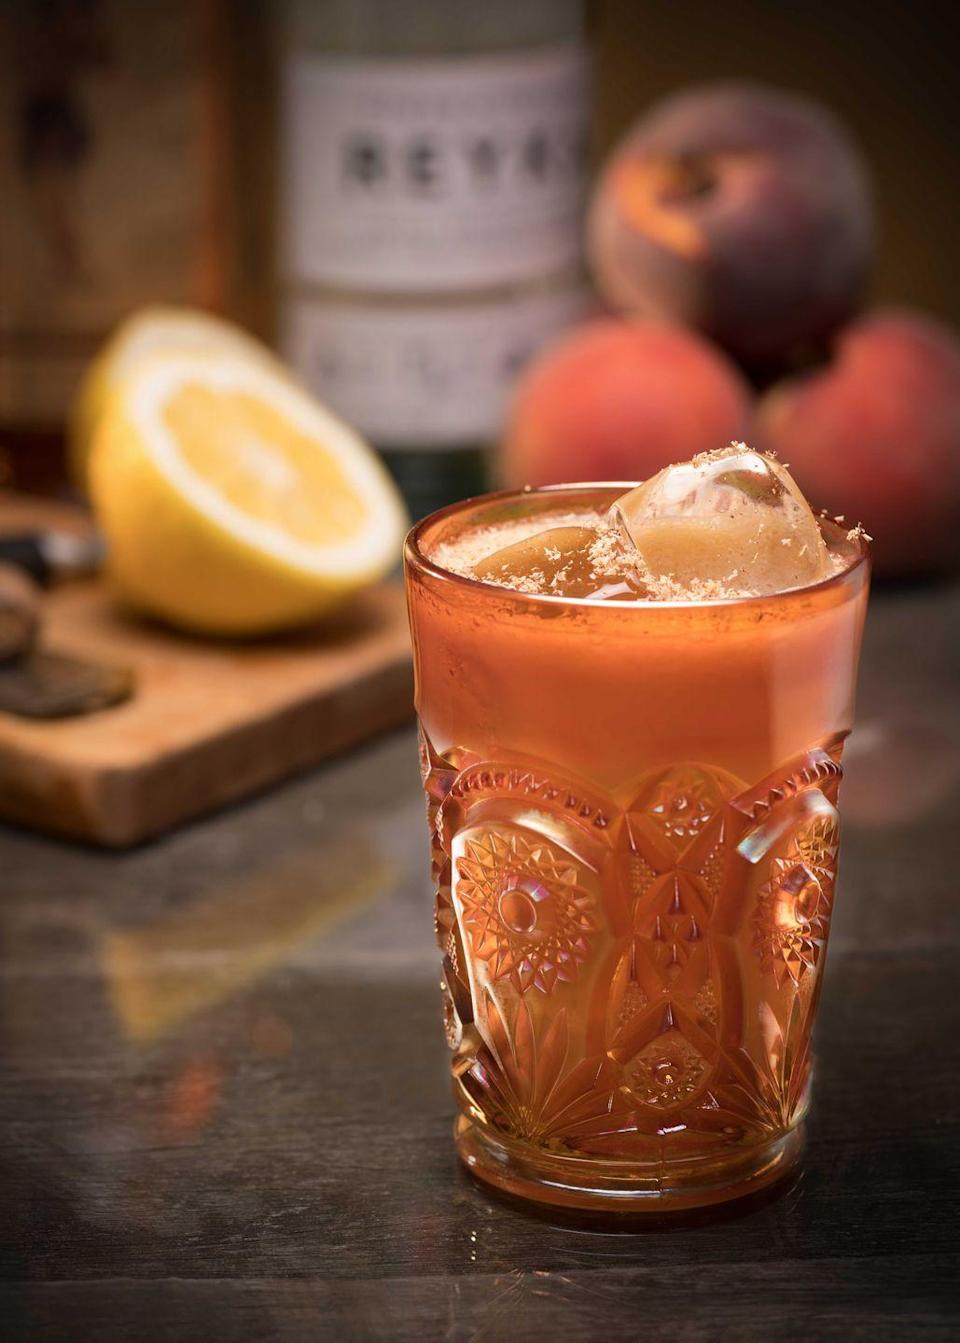 <p><strong>Ingredients</strong></p><p>1 oz Reyka vodka<br>1 oz Sailor Jerry rum<br>.5 oz lemon juice<br>.5 oz peach juice or nectar<br>Angostura bitters</p><p><strong>Instructions</strong></p><p>Combine all ingredients into cocktail shaker except bitters. Shake, double strain, and serve over crushed ice. Garnish with fresh grated nutmeg.</p>